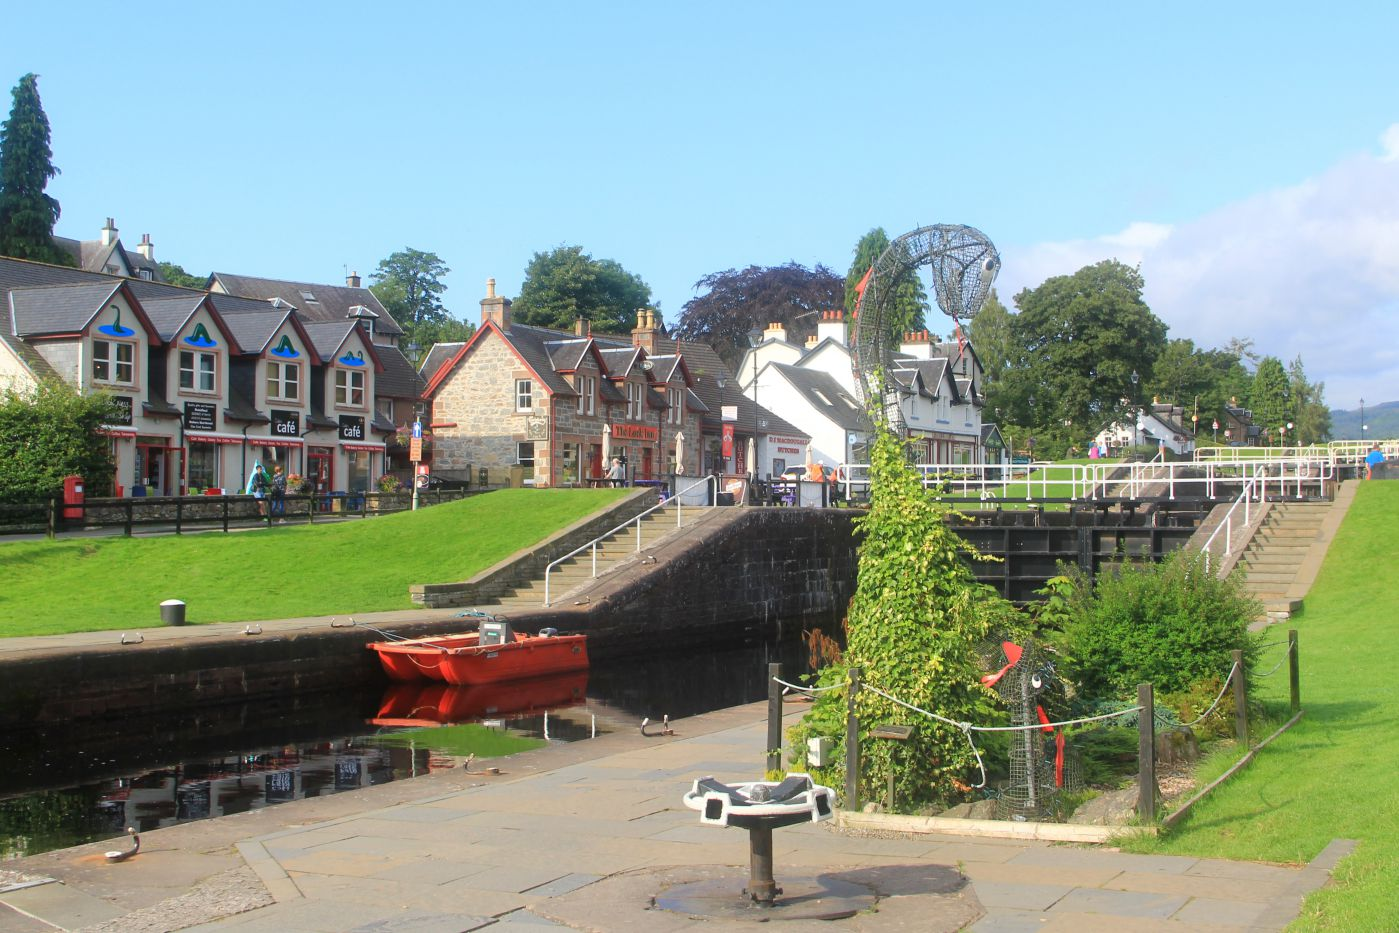 La Scozia occidentale fra Lowlands e Highlands - Fort Augustus - Caledonian Canal